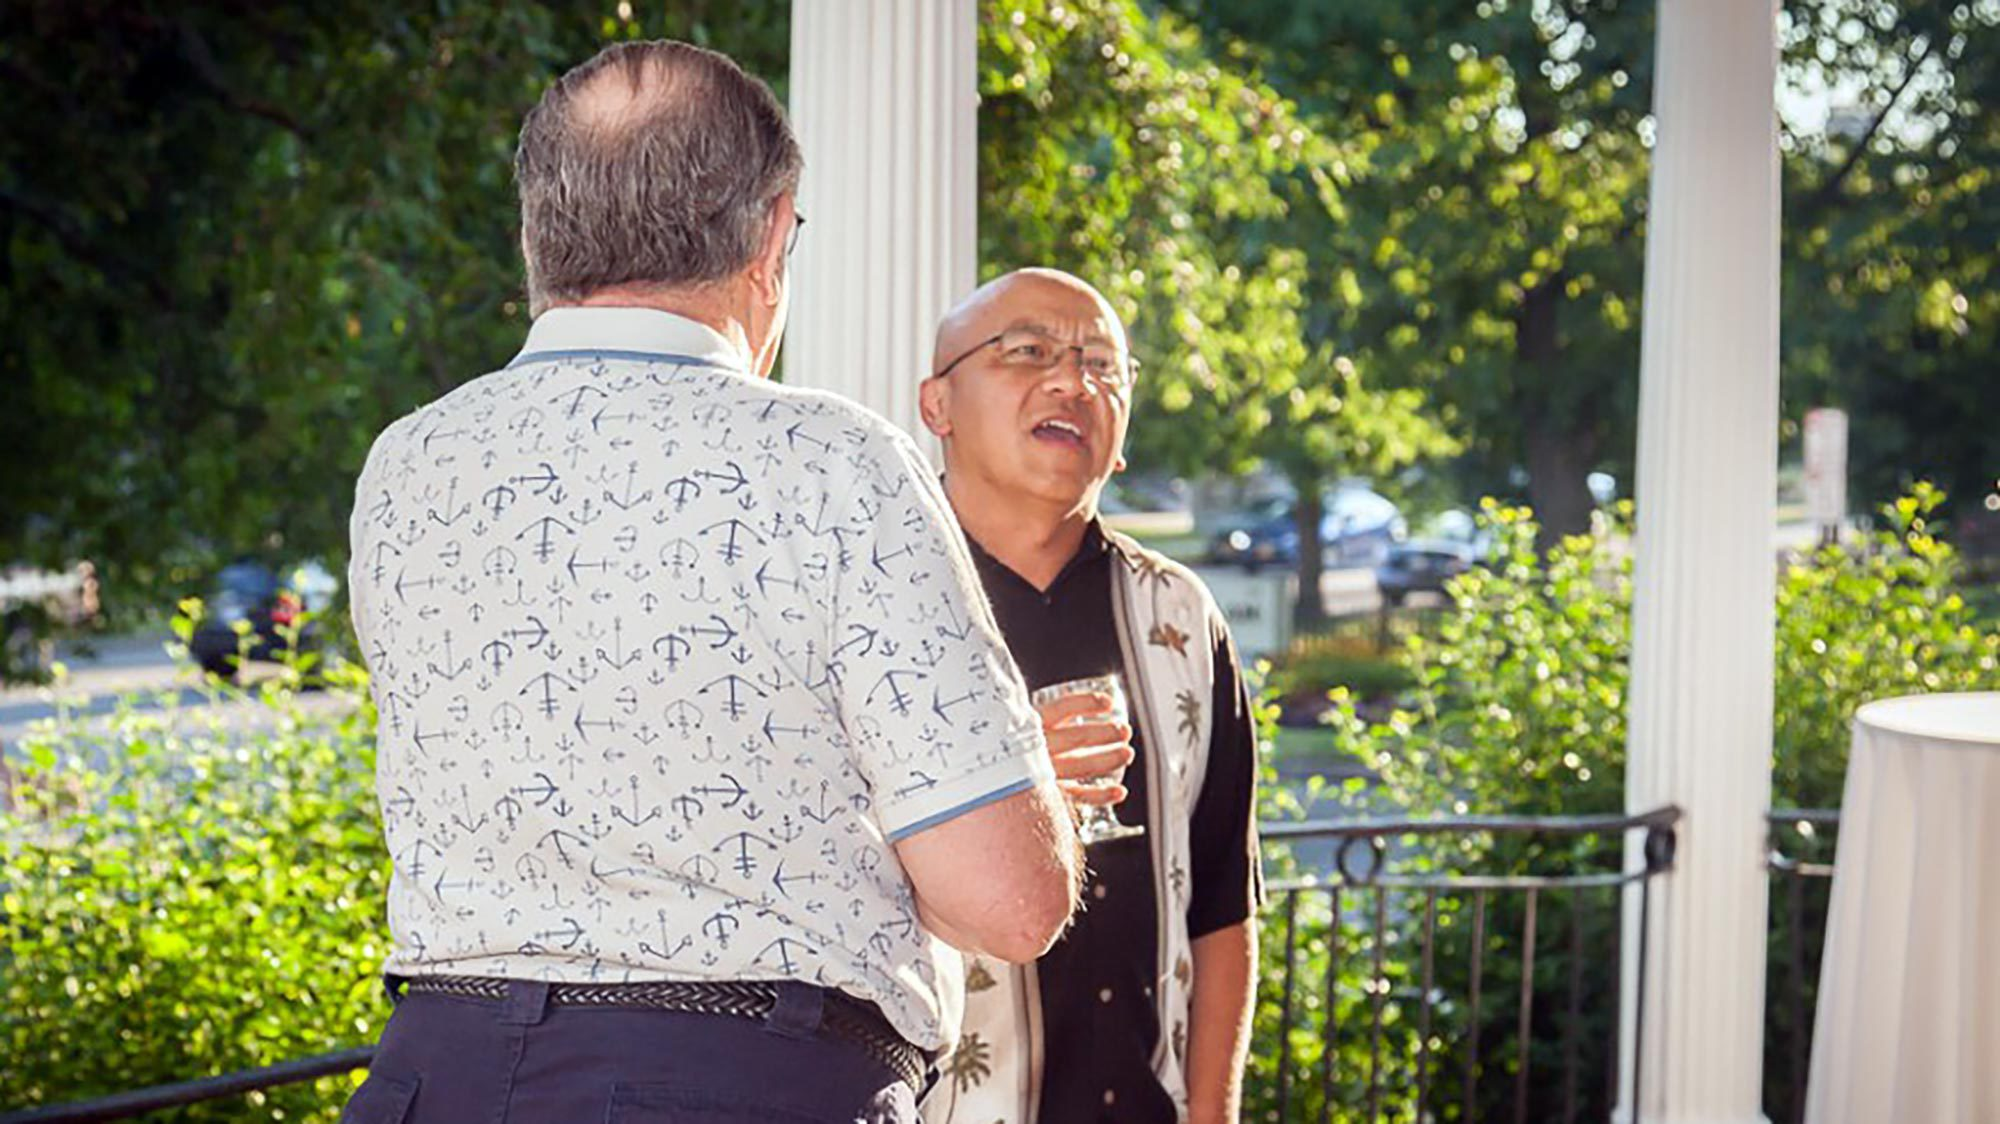 Customers enjoy the beautiful early evening at Century Club at the kick-off happy hour.